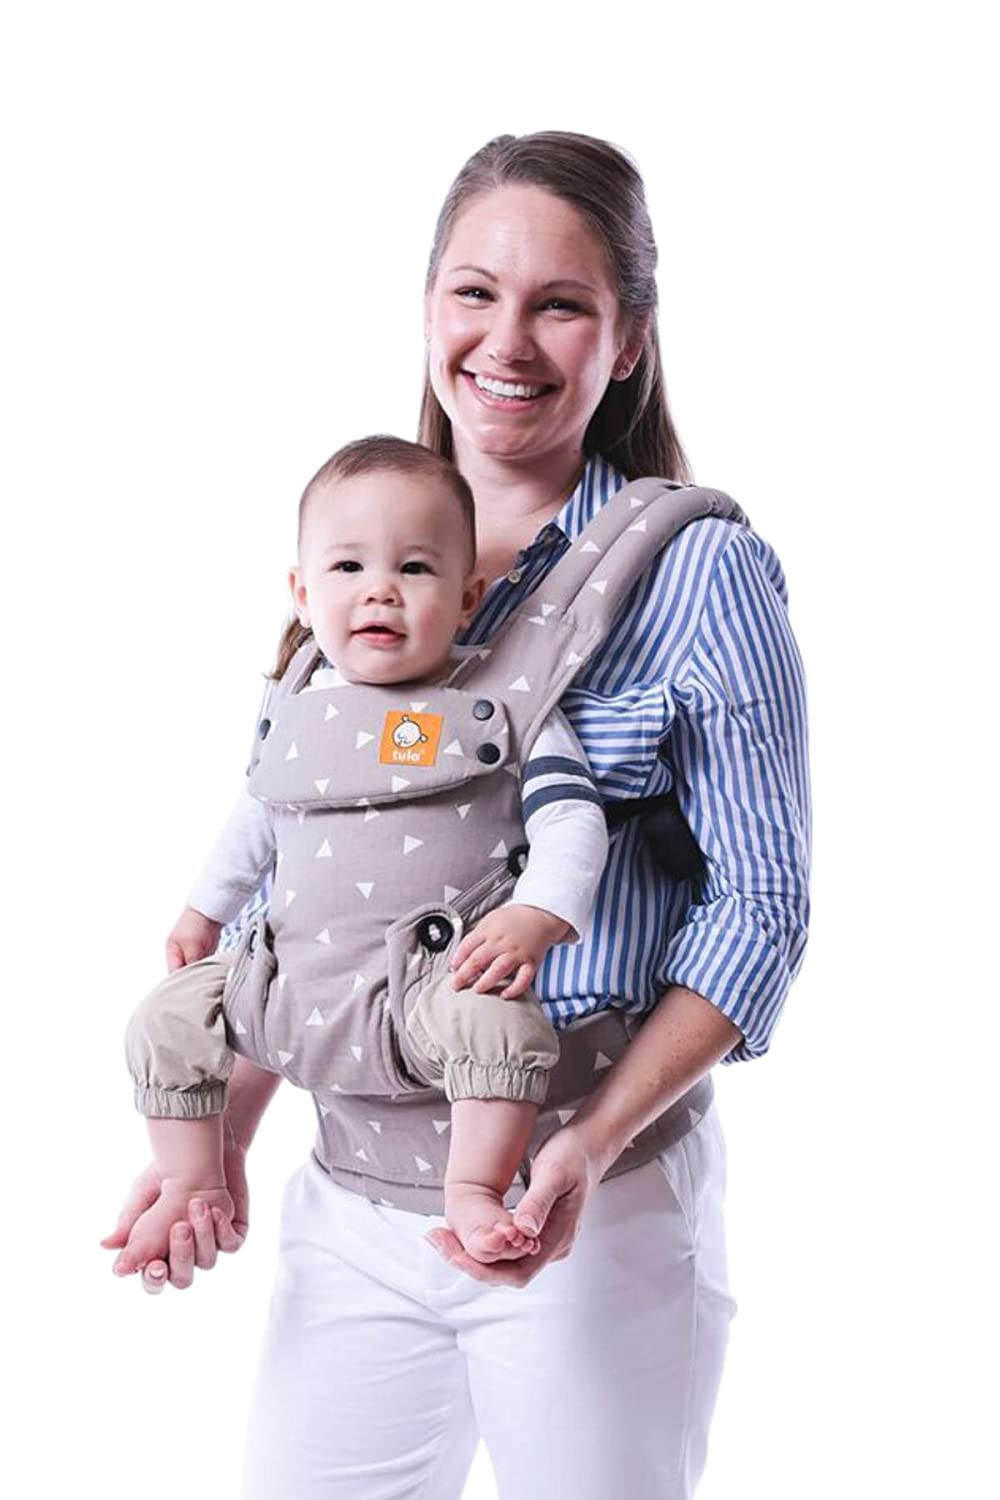 Baby Tula Explore Baby Carrier, Adjustable Newborn to Toddler Carrier, Ergonomic and Multiple Positions for 7 – 45 pounds – Discover, Black with Gray Stars